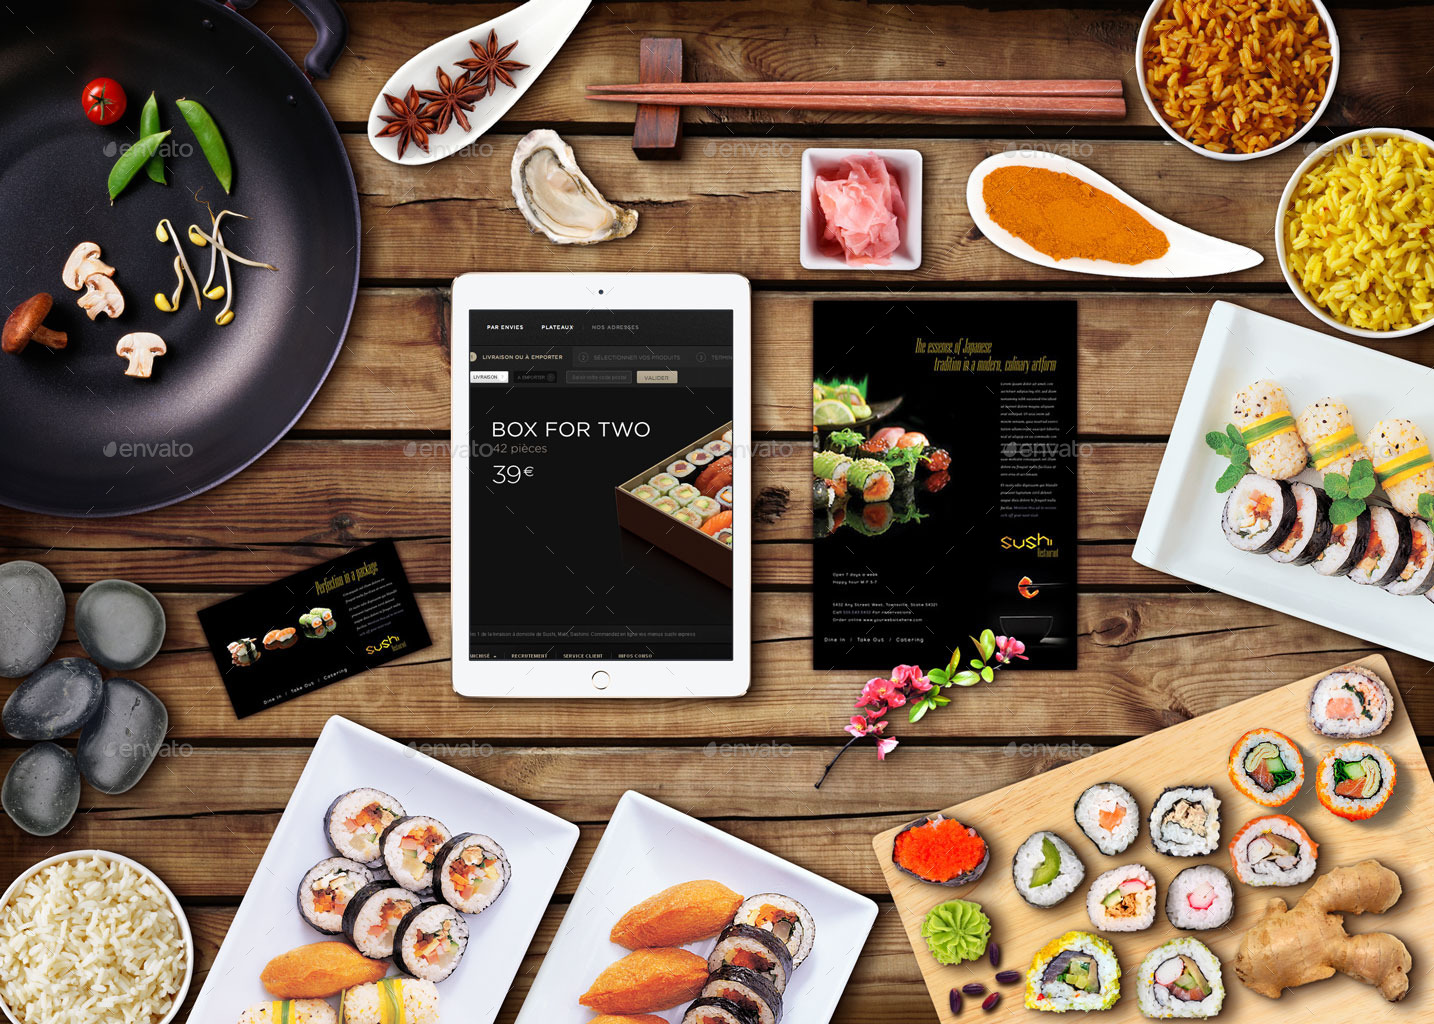 Asian cuisine hero image scene generators by oloreon